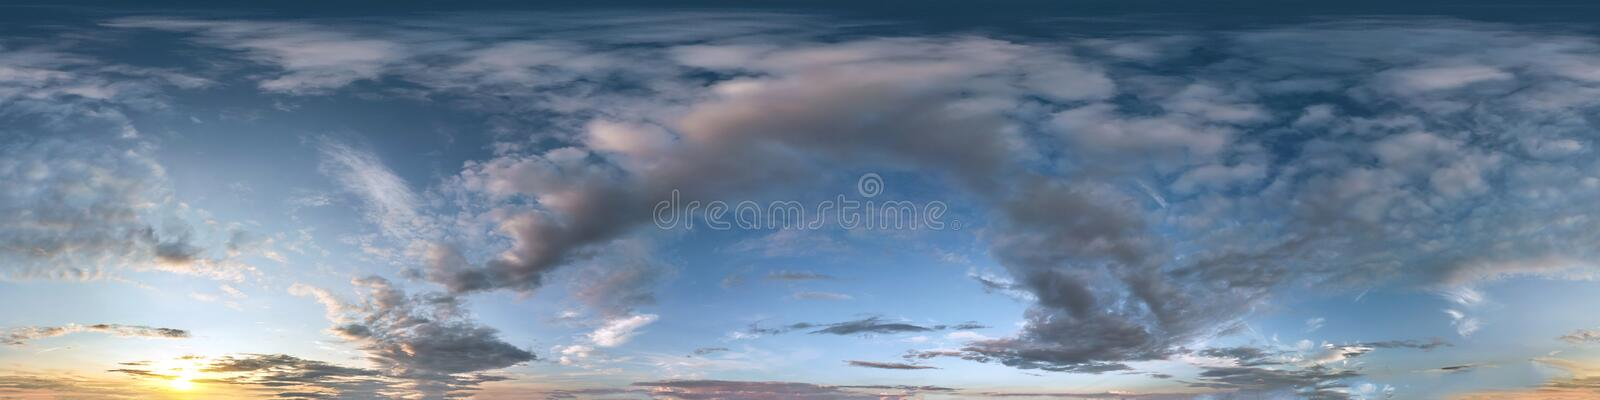 Seamless dark sunset sky hdri panorama 360 degrees angle view with beautiful clouds  with zenith for use in 3d graphics as sky. Dome or edit drone shot royalty free stock photos